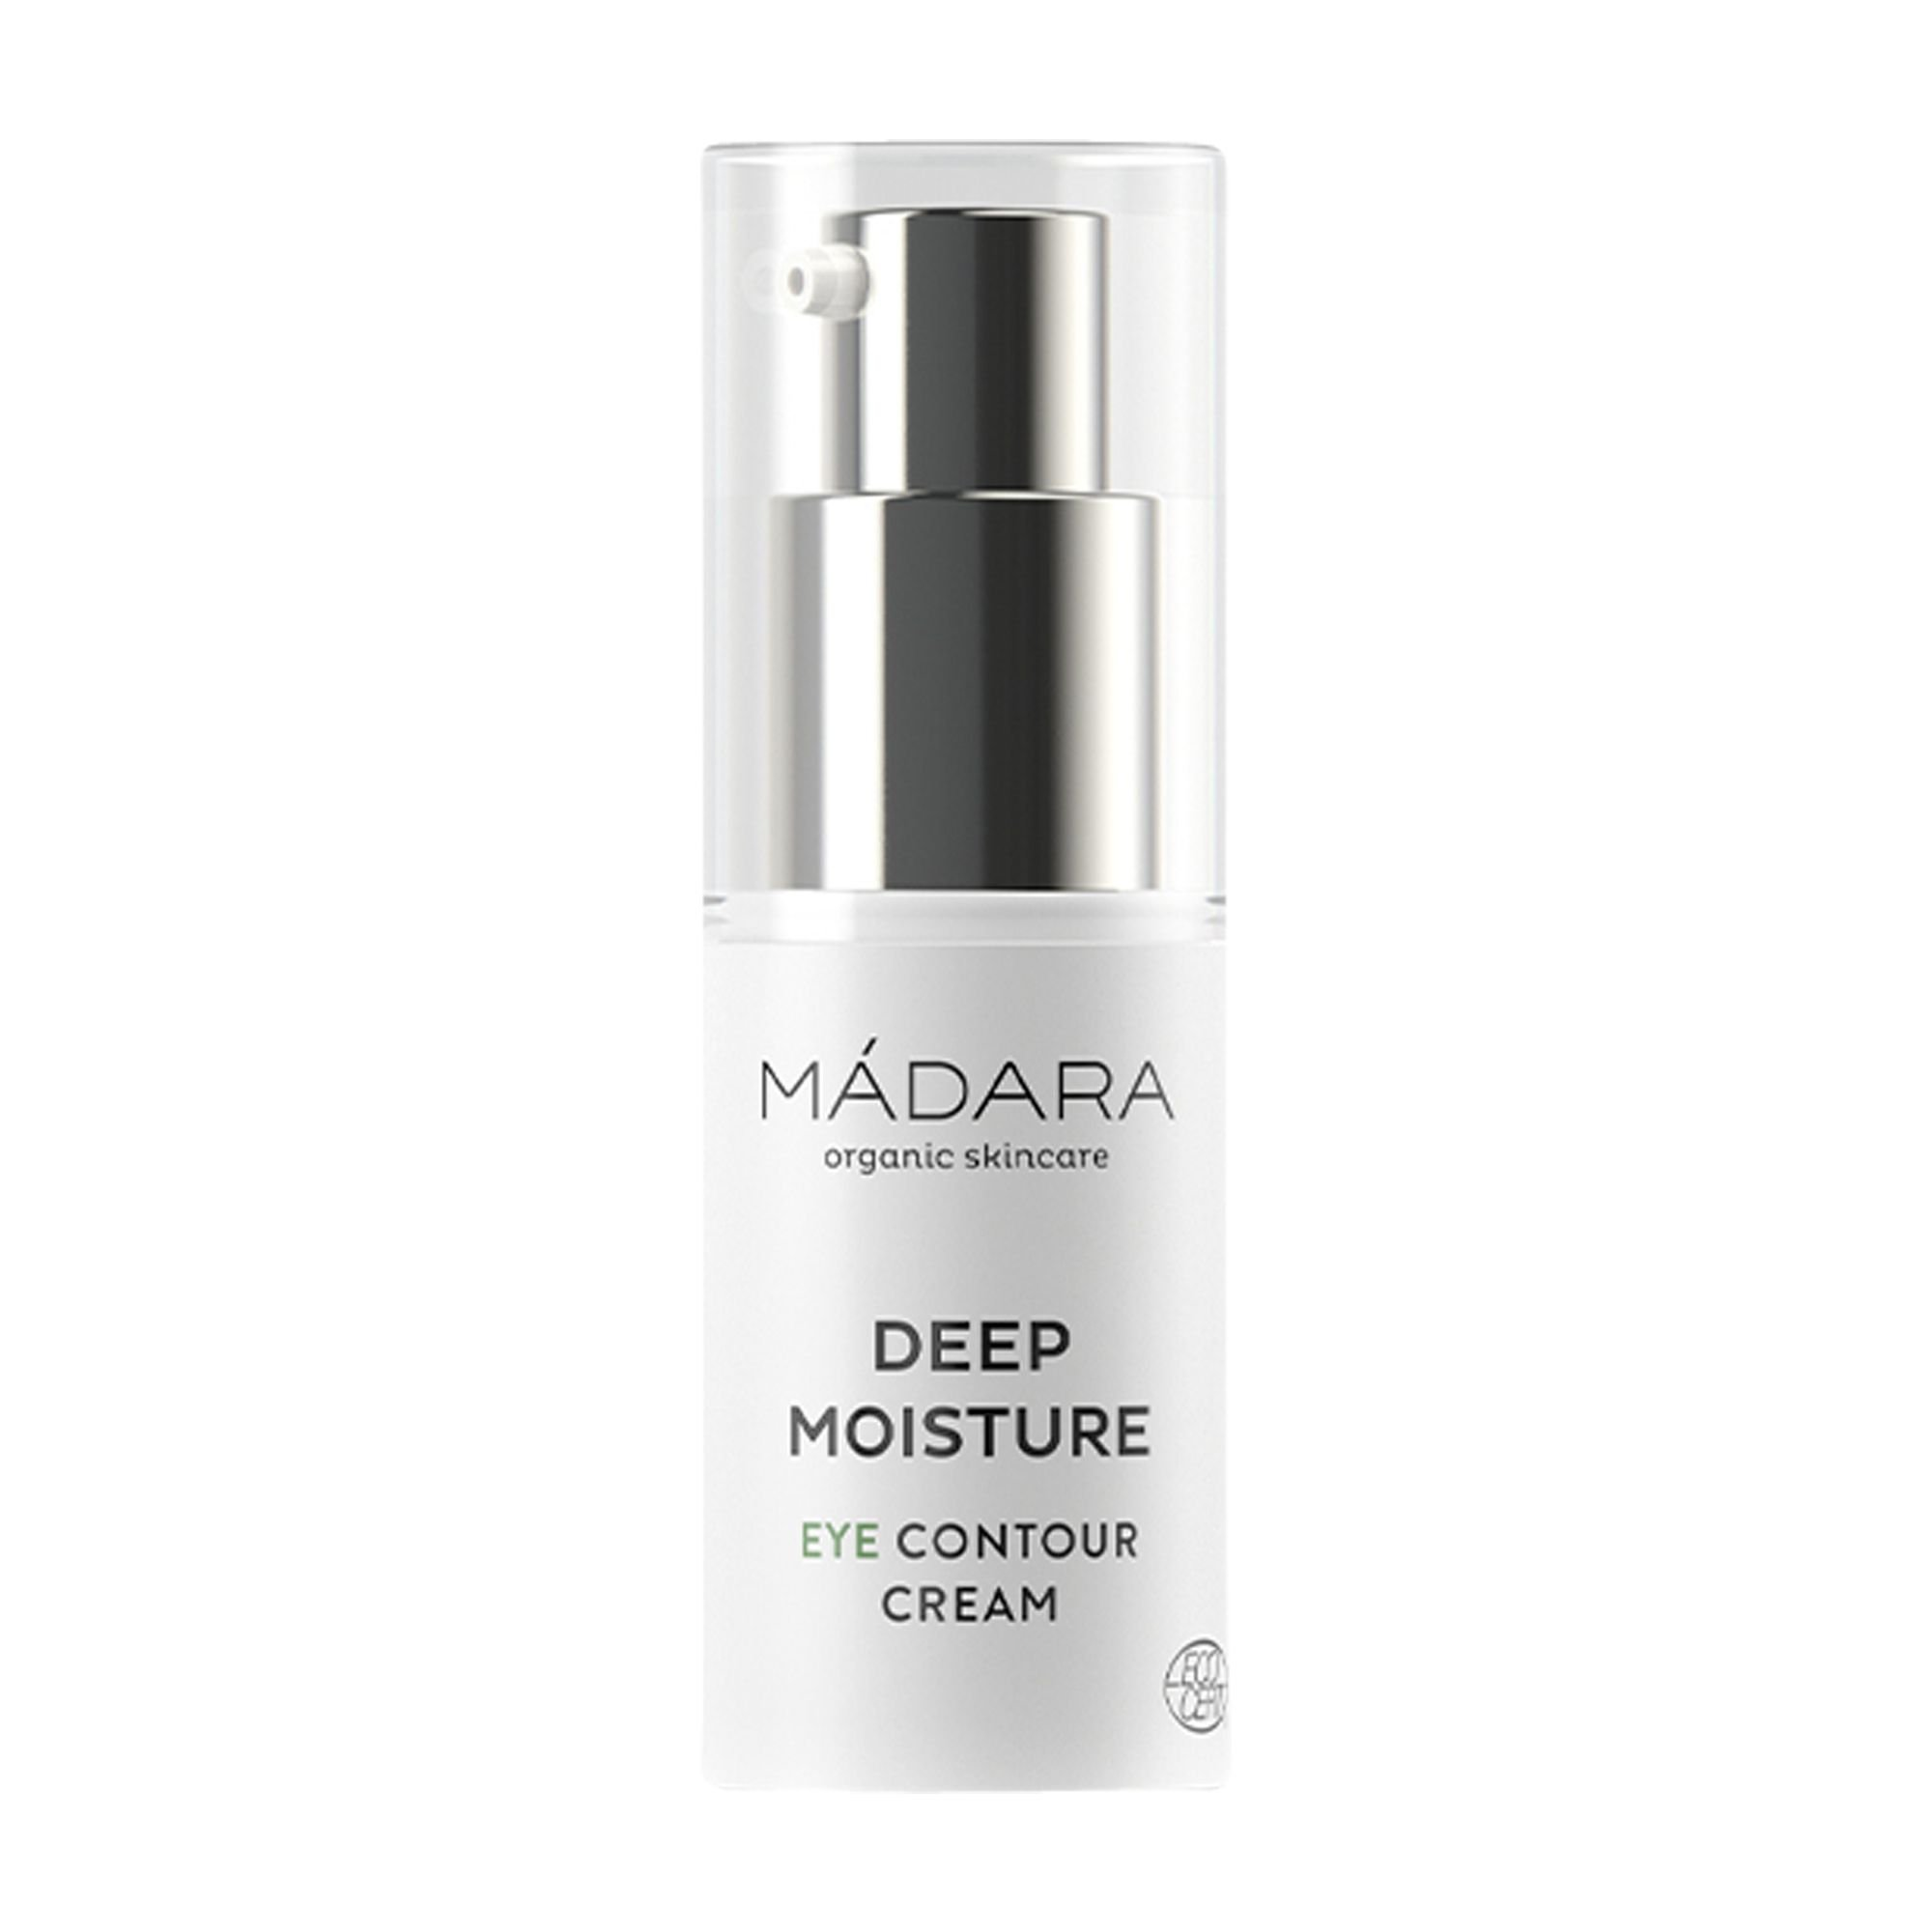 Mádara - Deep Moisture Eye Contour Cream 15 ml